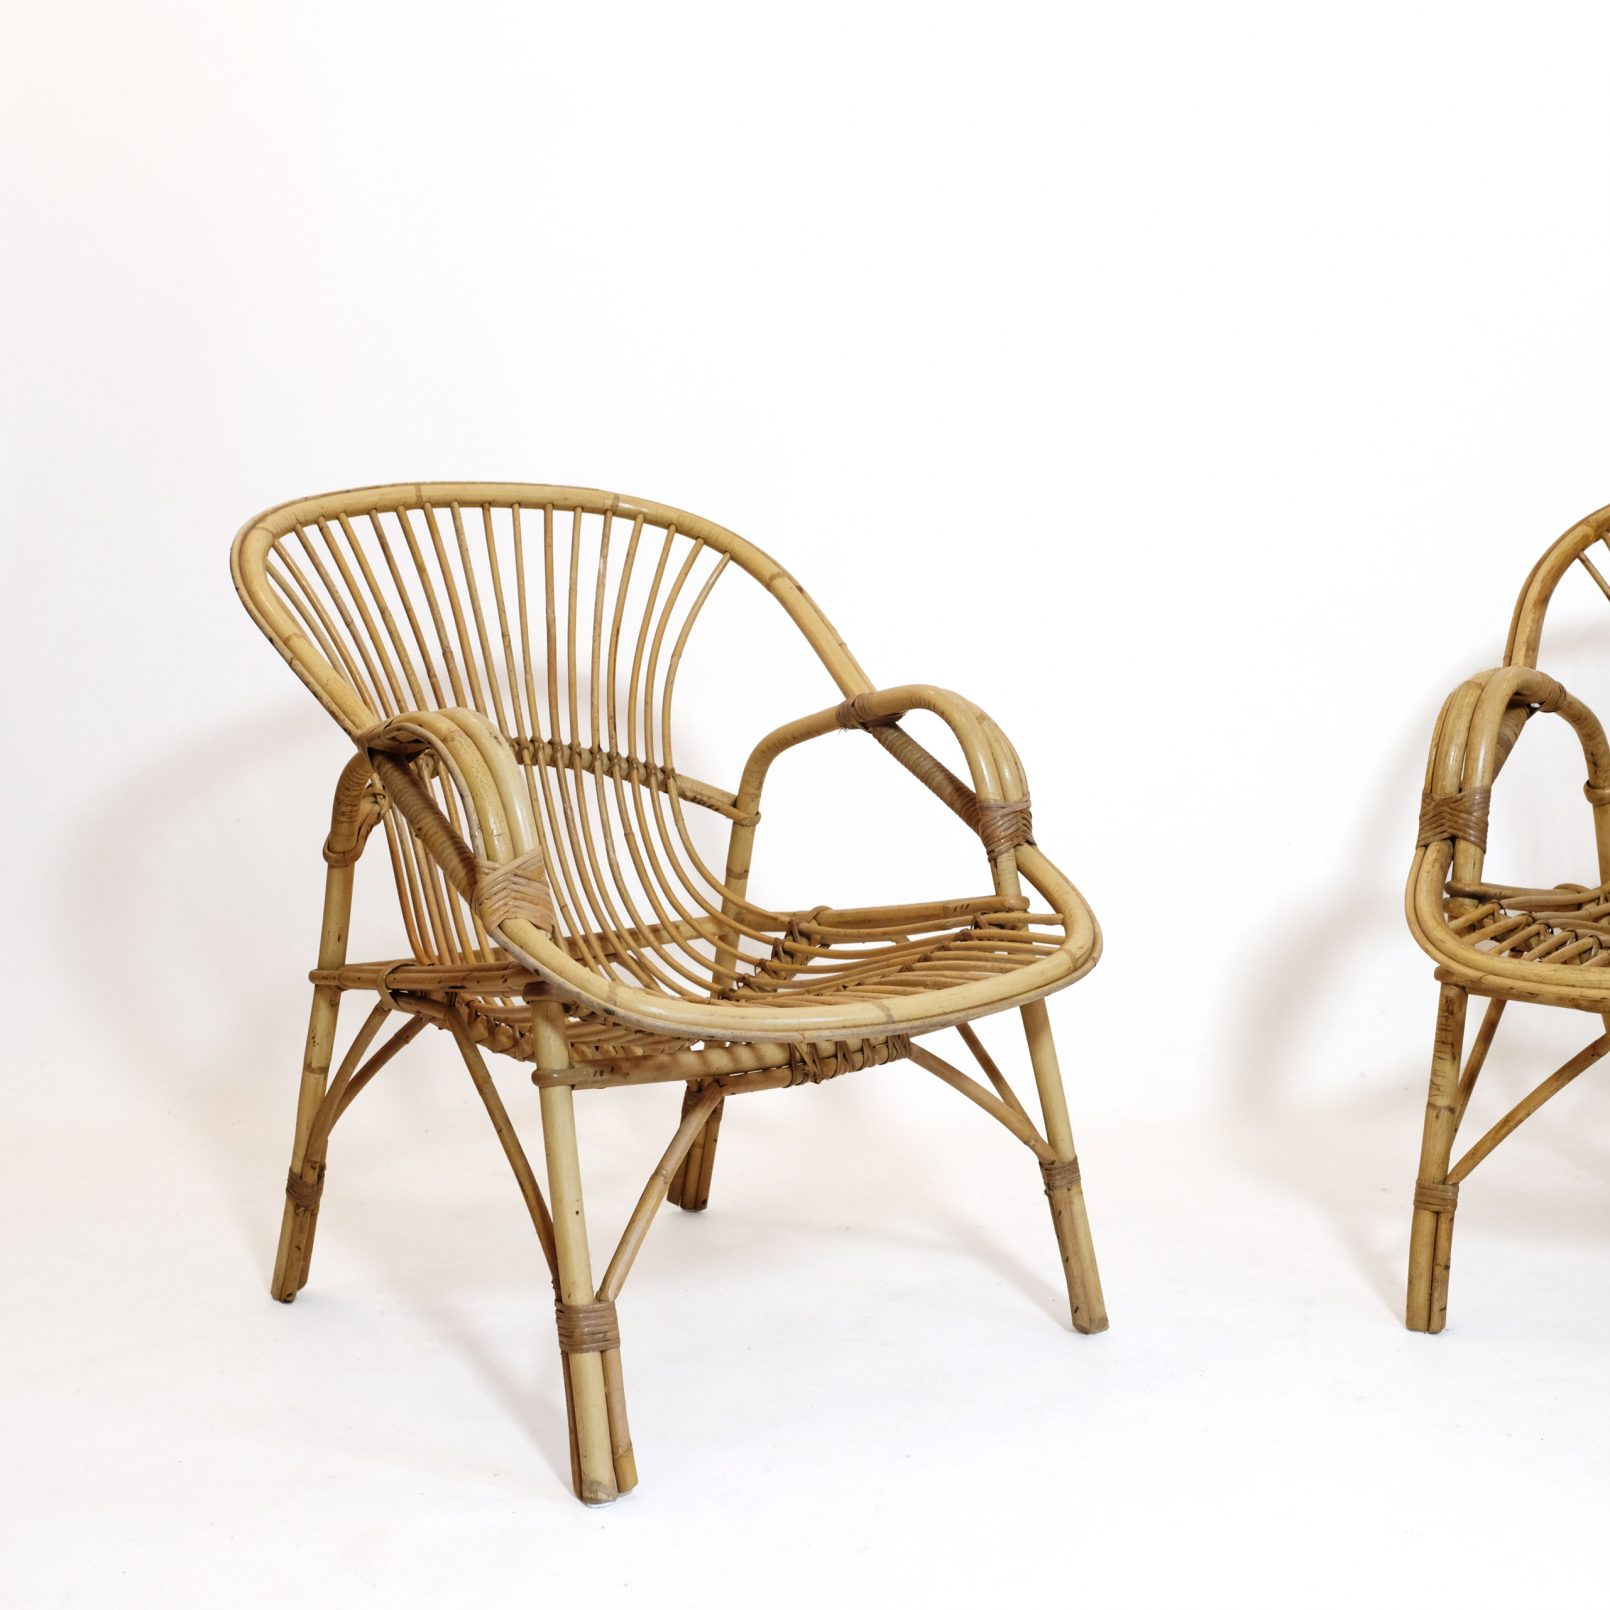 French rattan lounge chair from the 1960s-1970s.